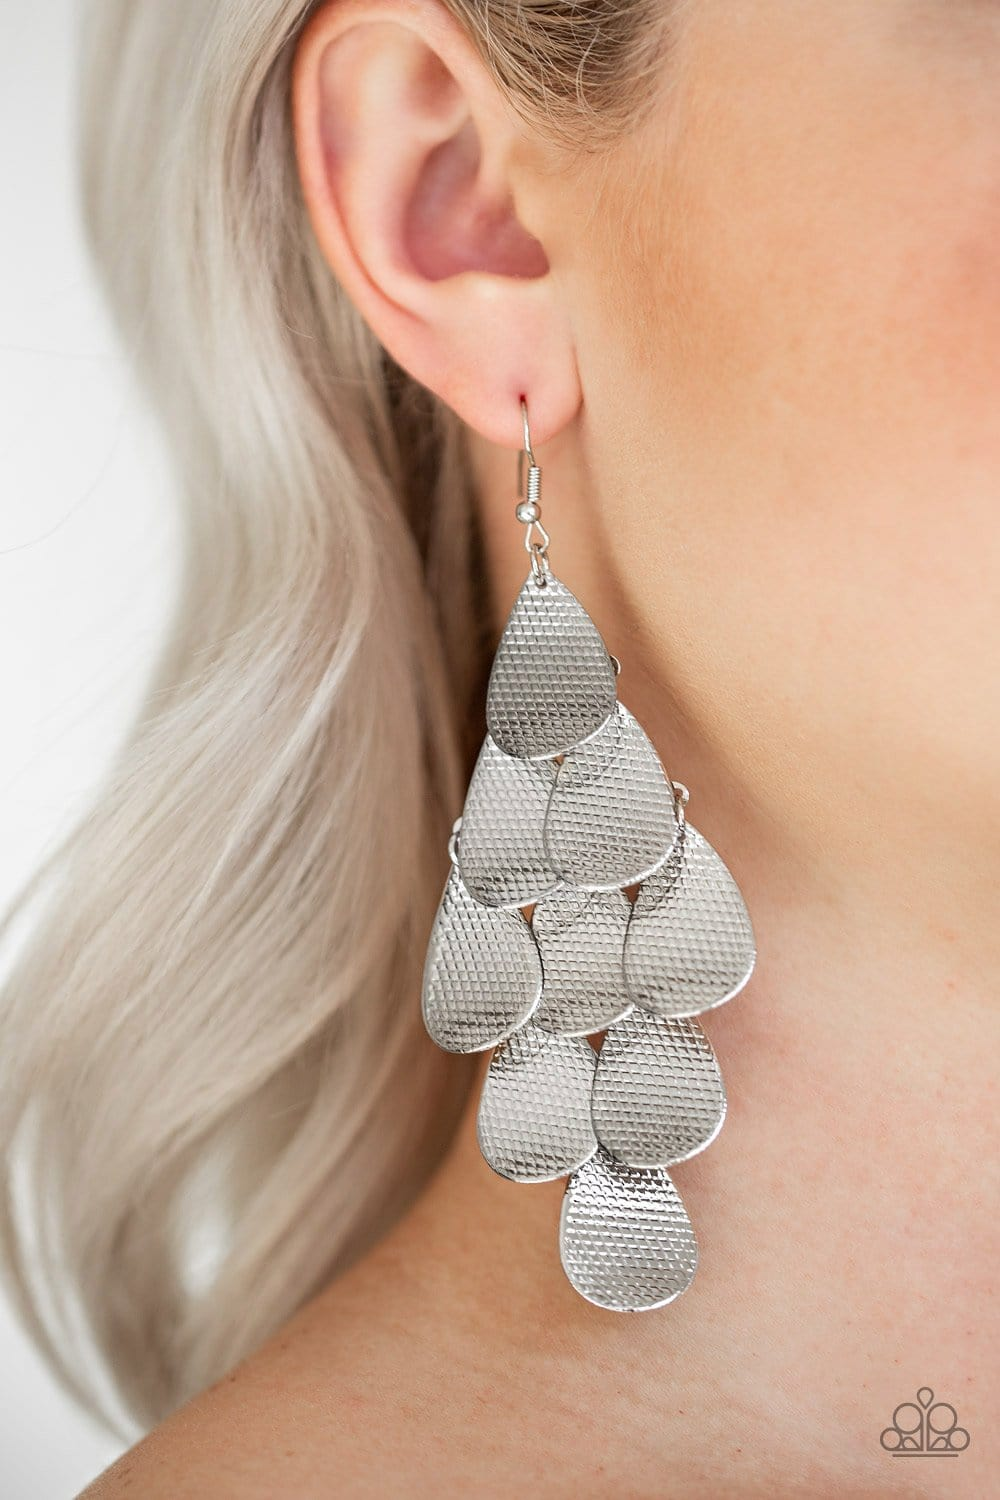 Iconic Illumination - Silver: Paparazzi Accessories - Jewels N' Thingz Boutique